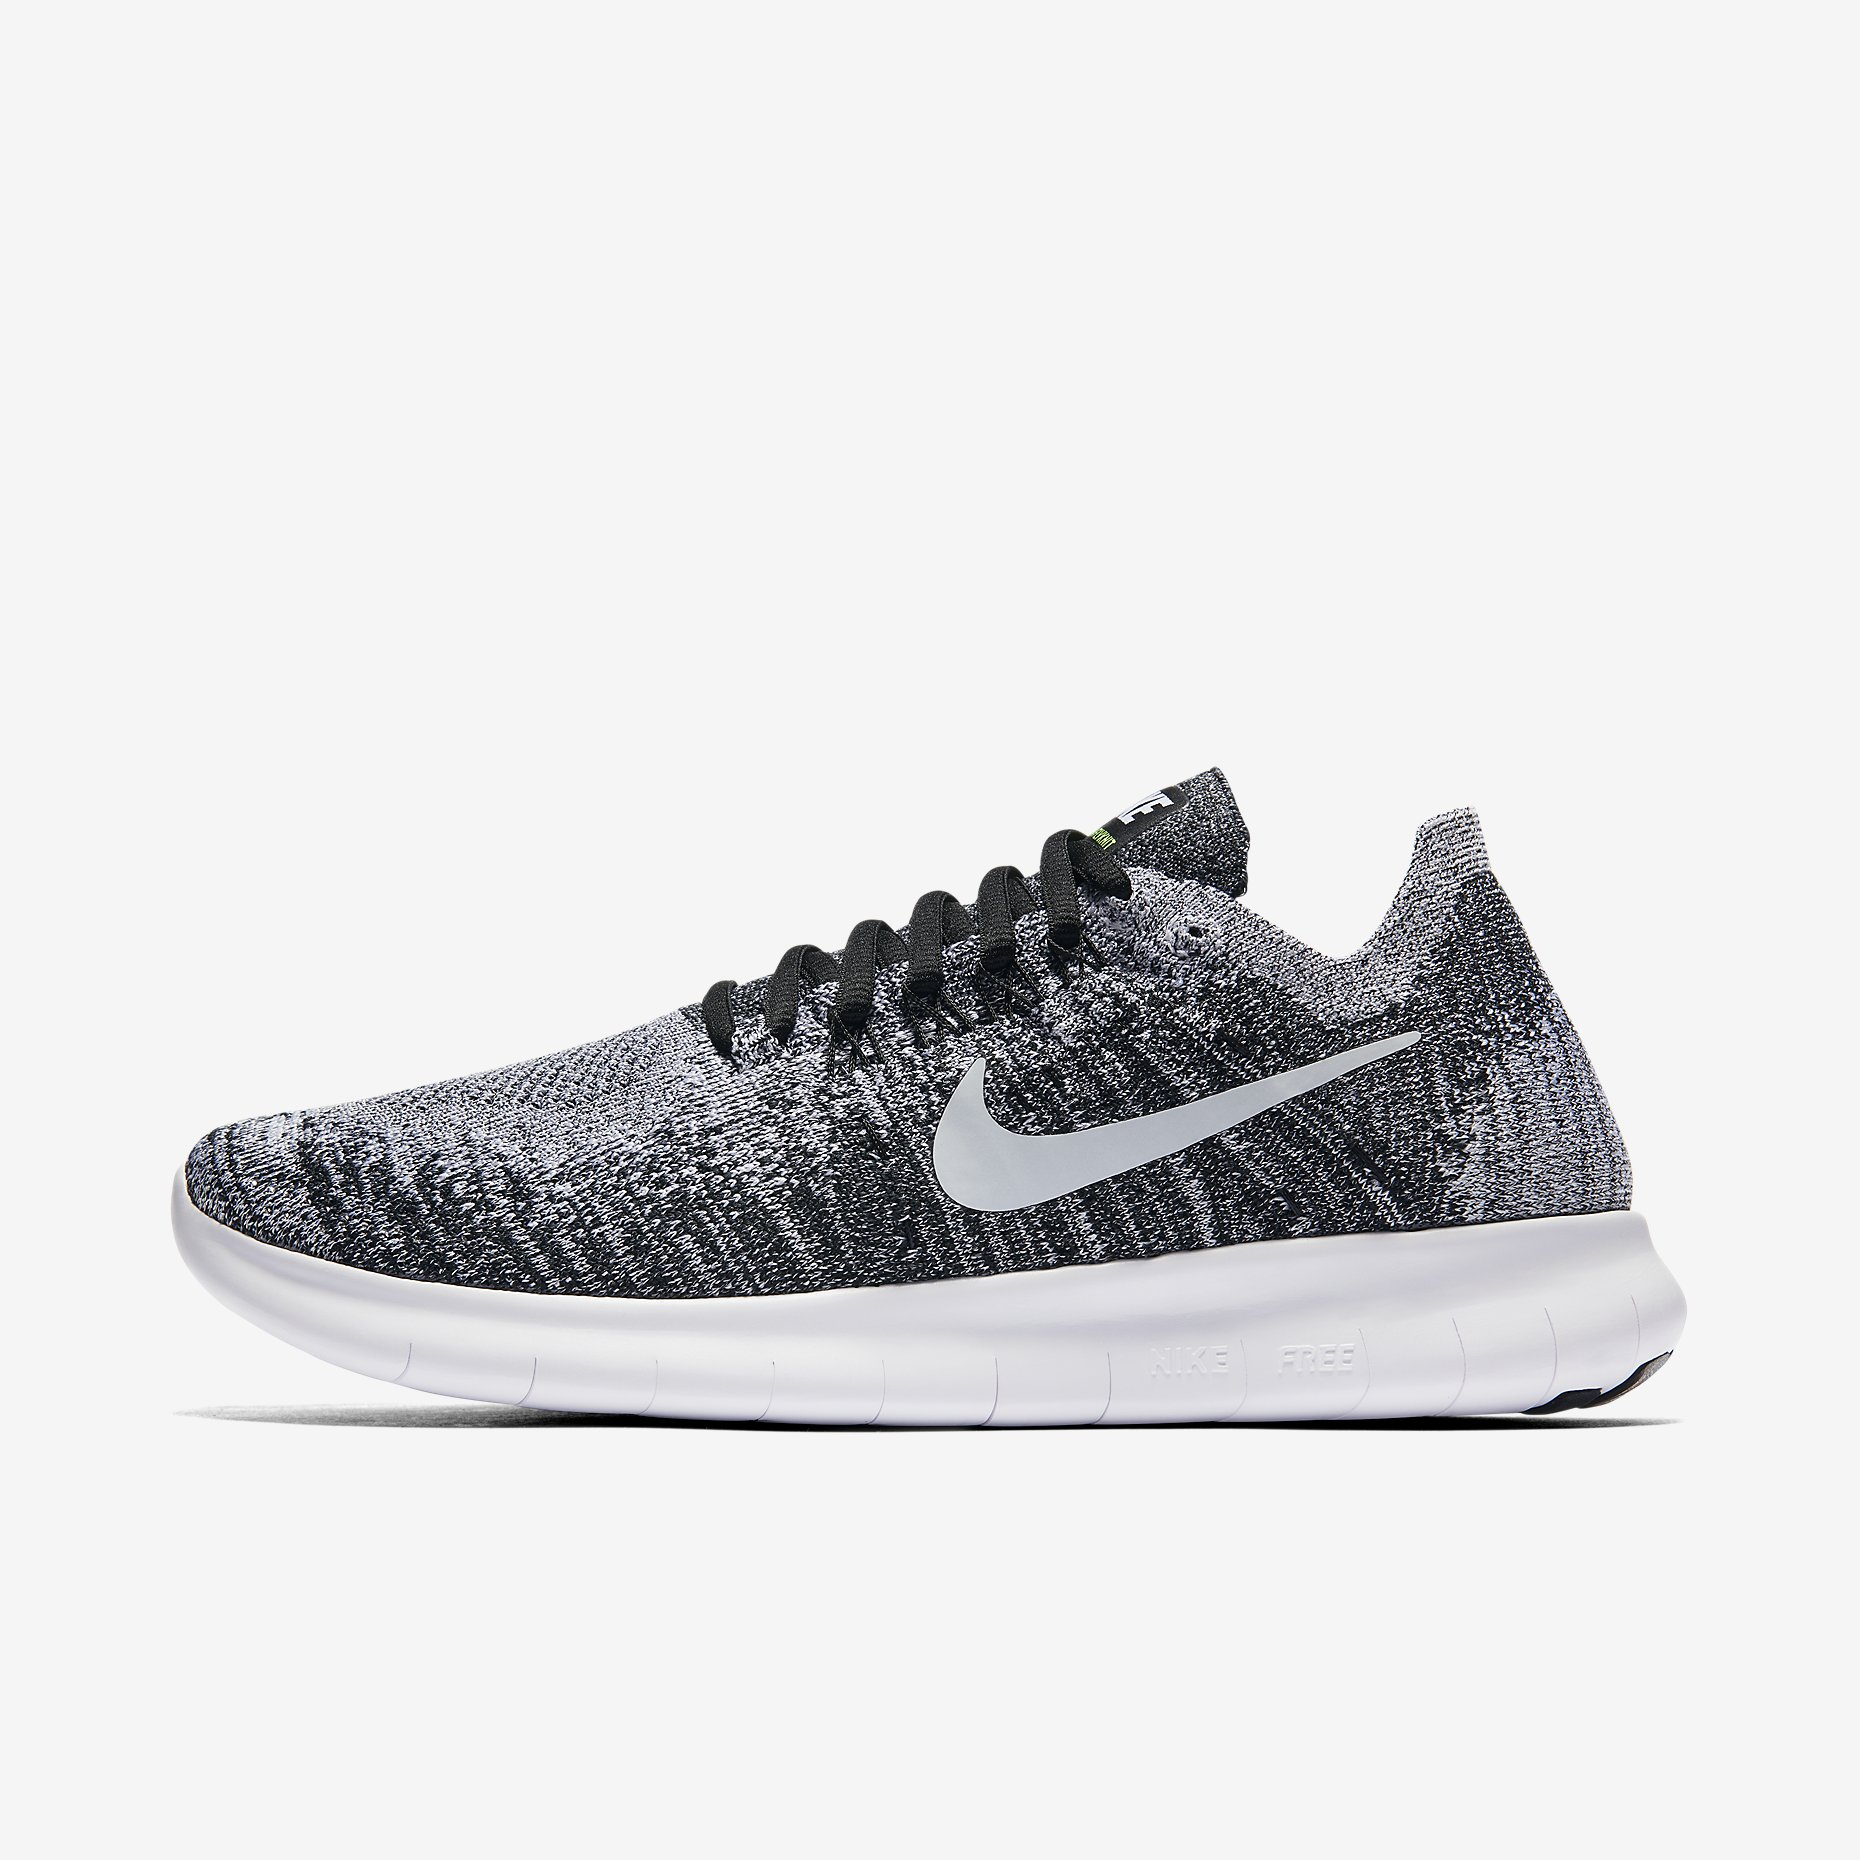 quality design 87a67 d9aec Nike Free RN Flyknit 2017 Women's Running Shoes